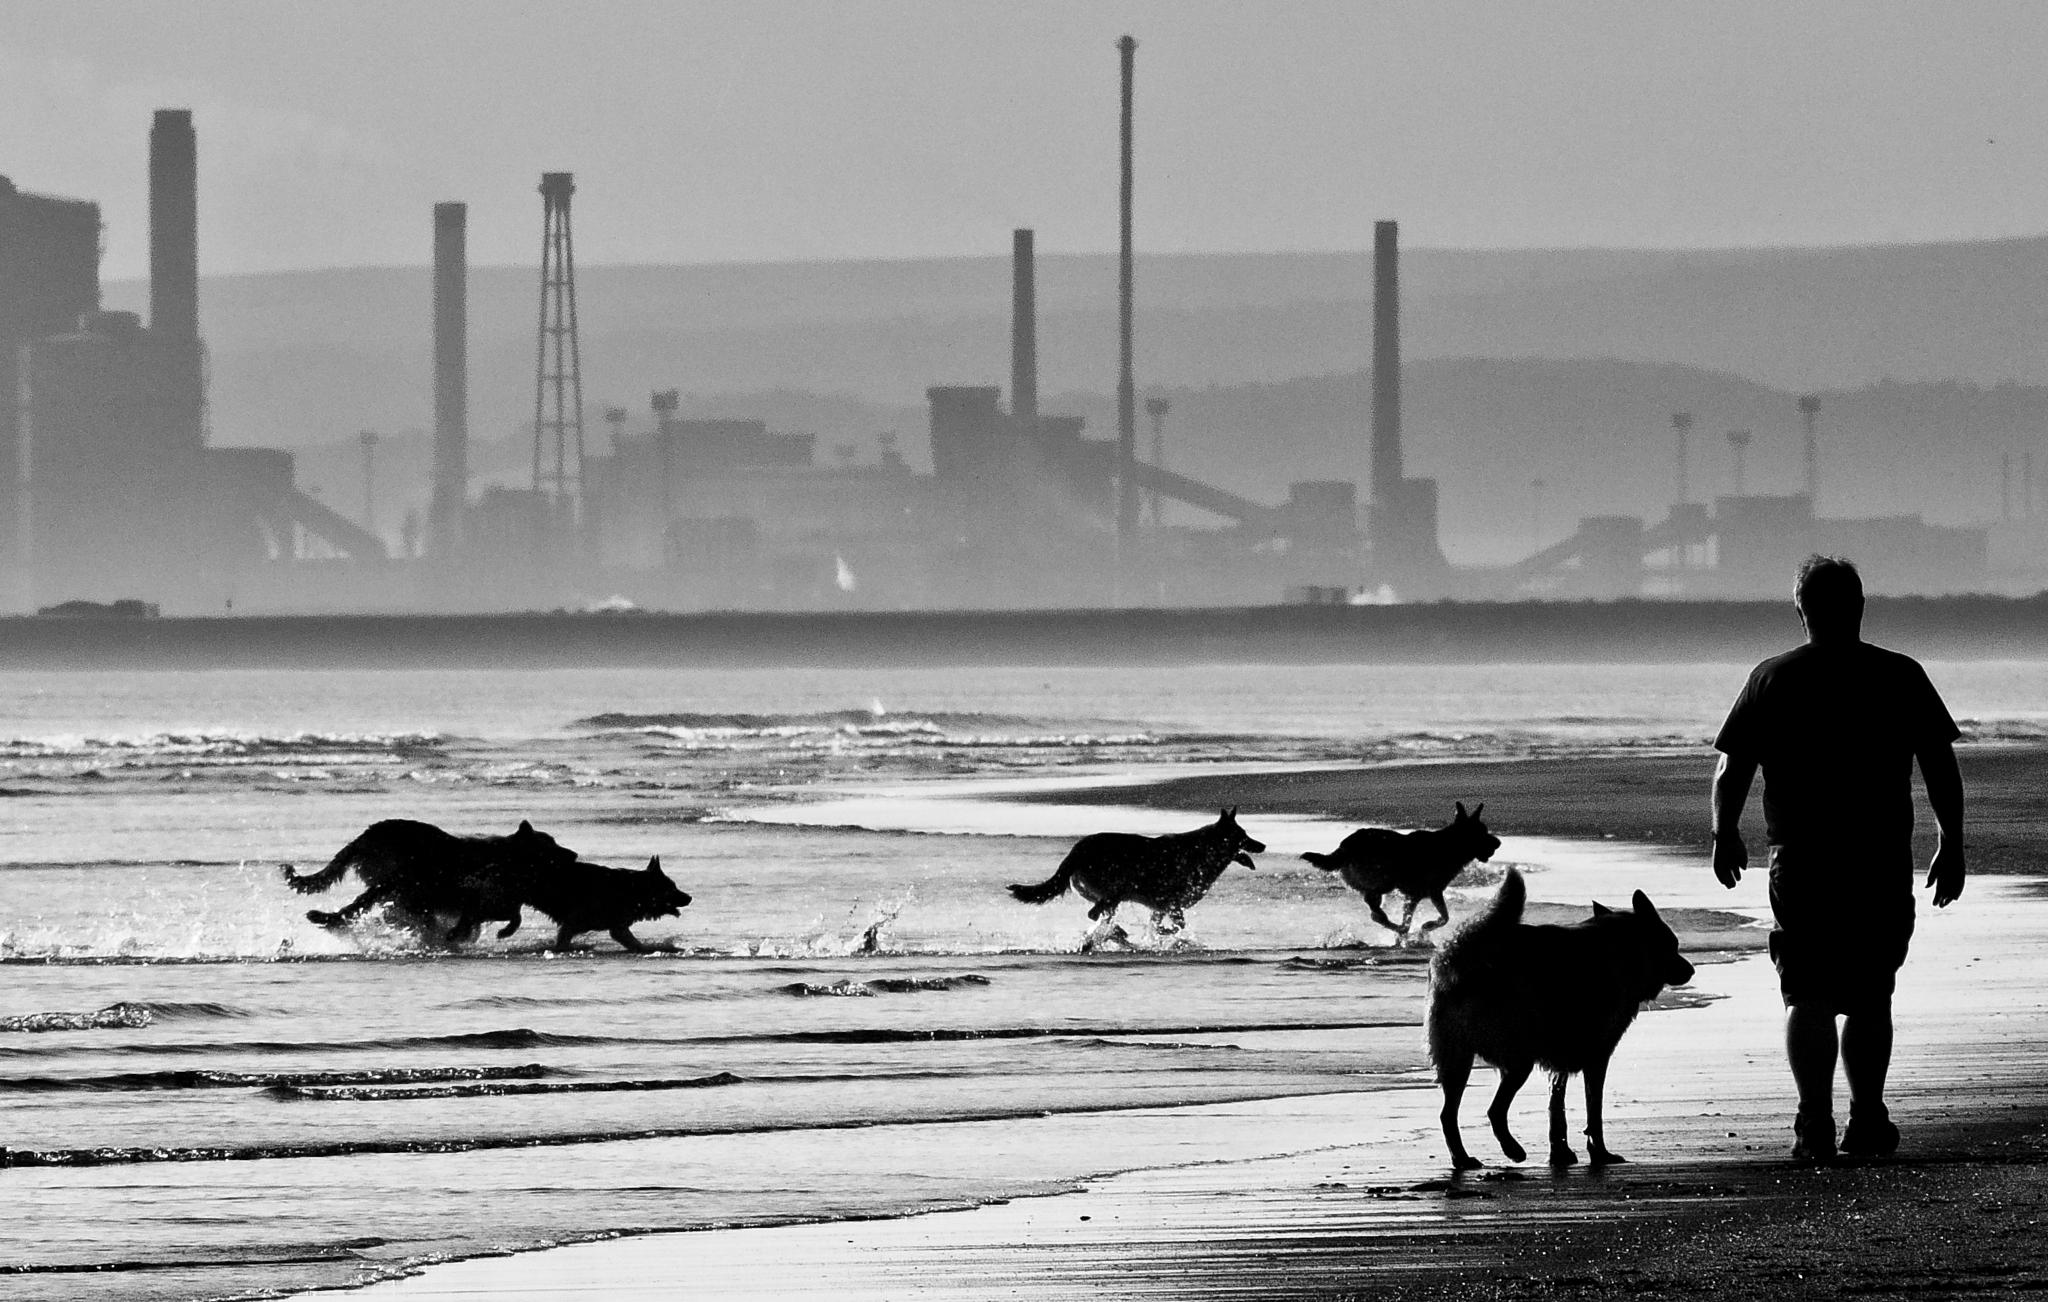 Walking the pack! by Peter Edwardo Vicente.